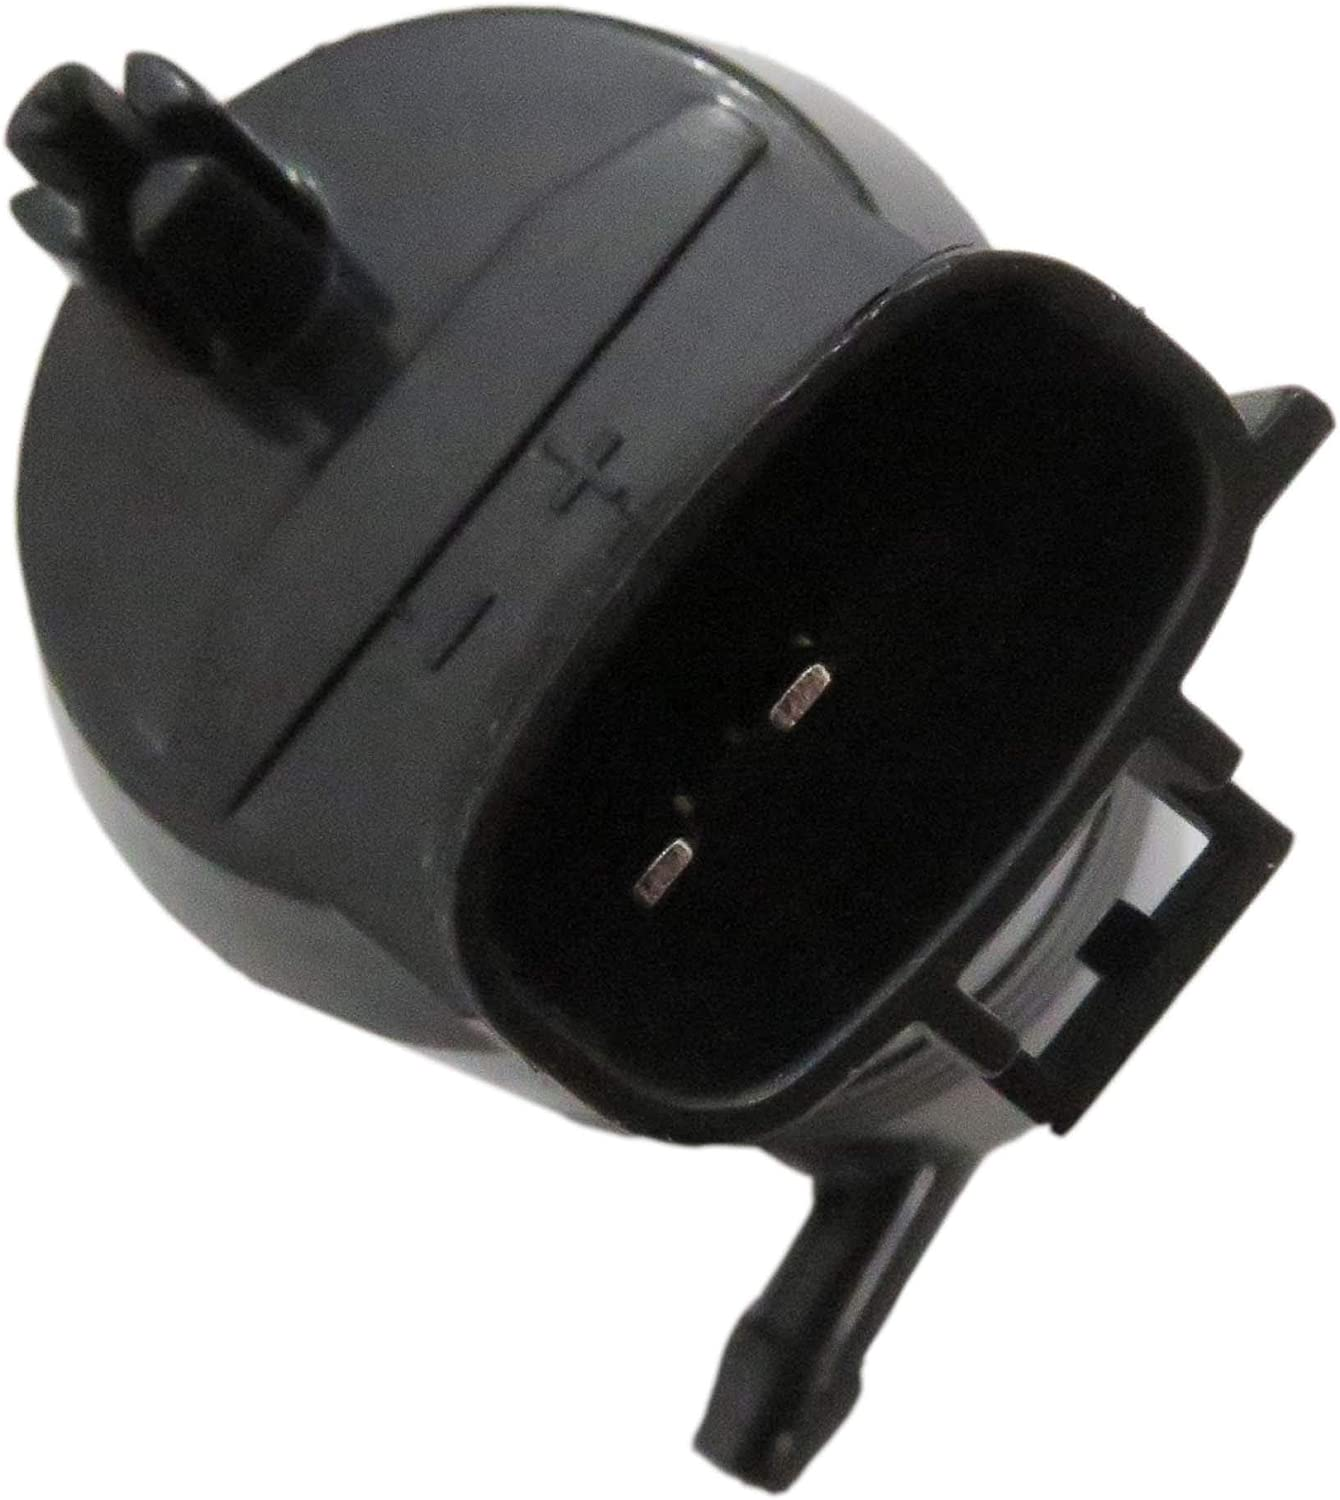 Toyota Replaces OE #: 22156171 85330-06030,22138719 385-232316C Windshield Washer Pump for Chevrolet Lexus /& More